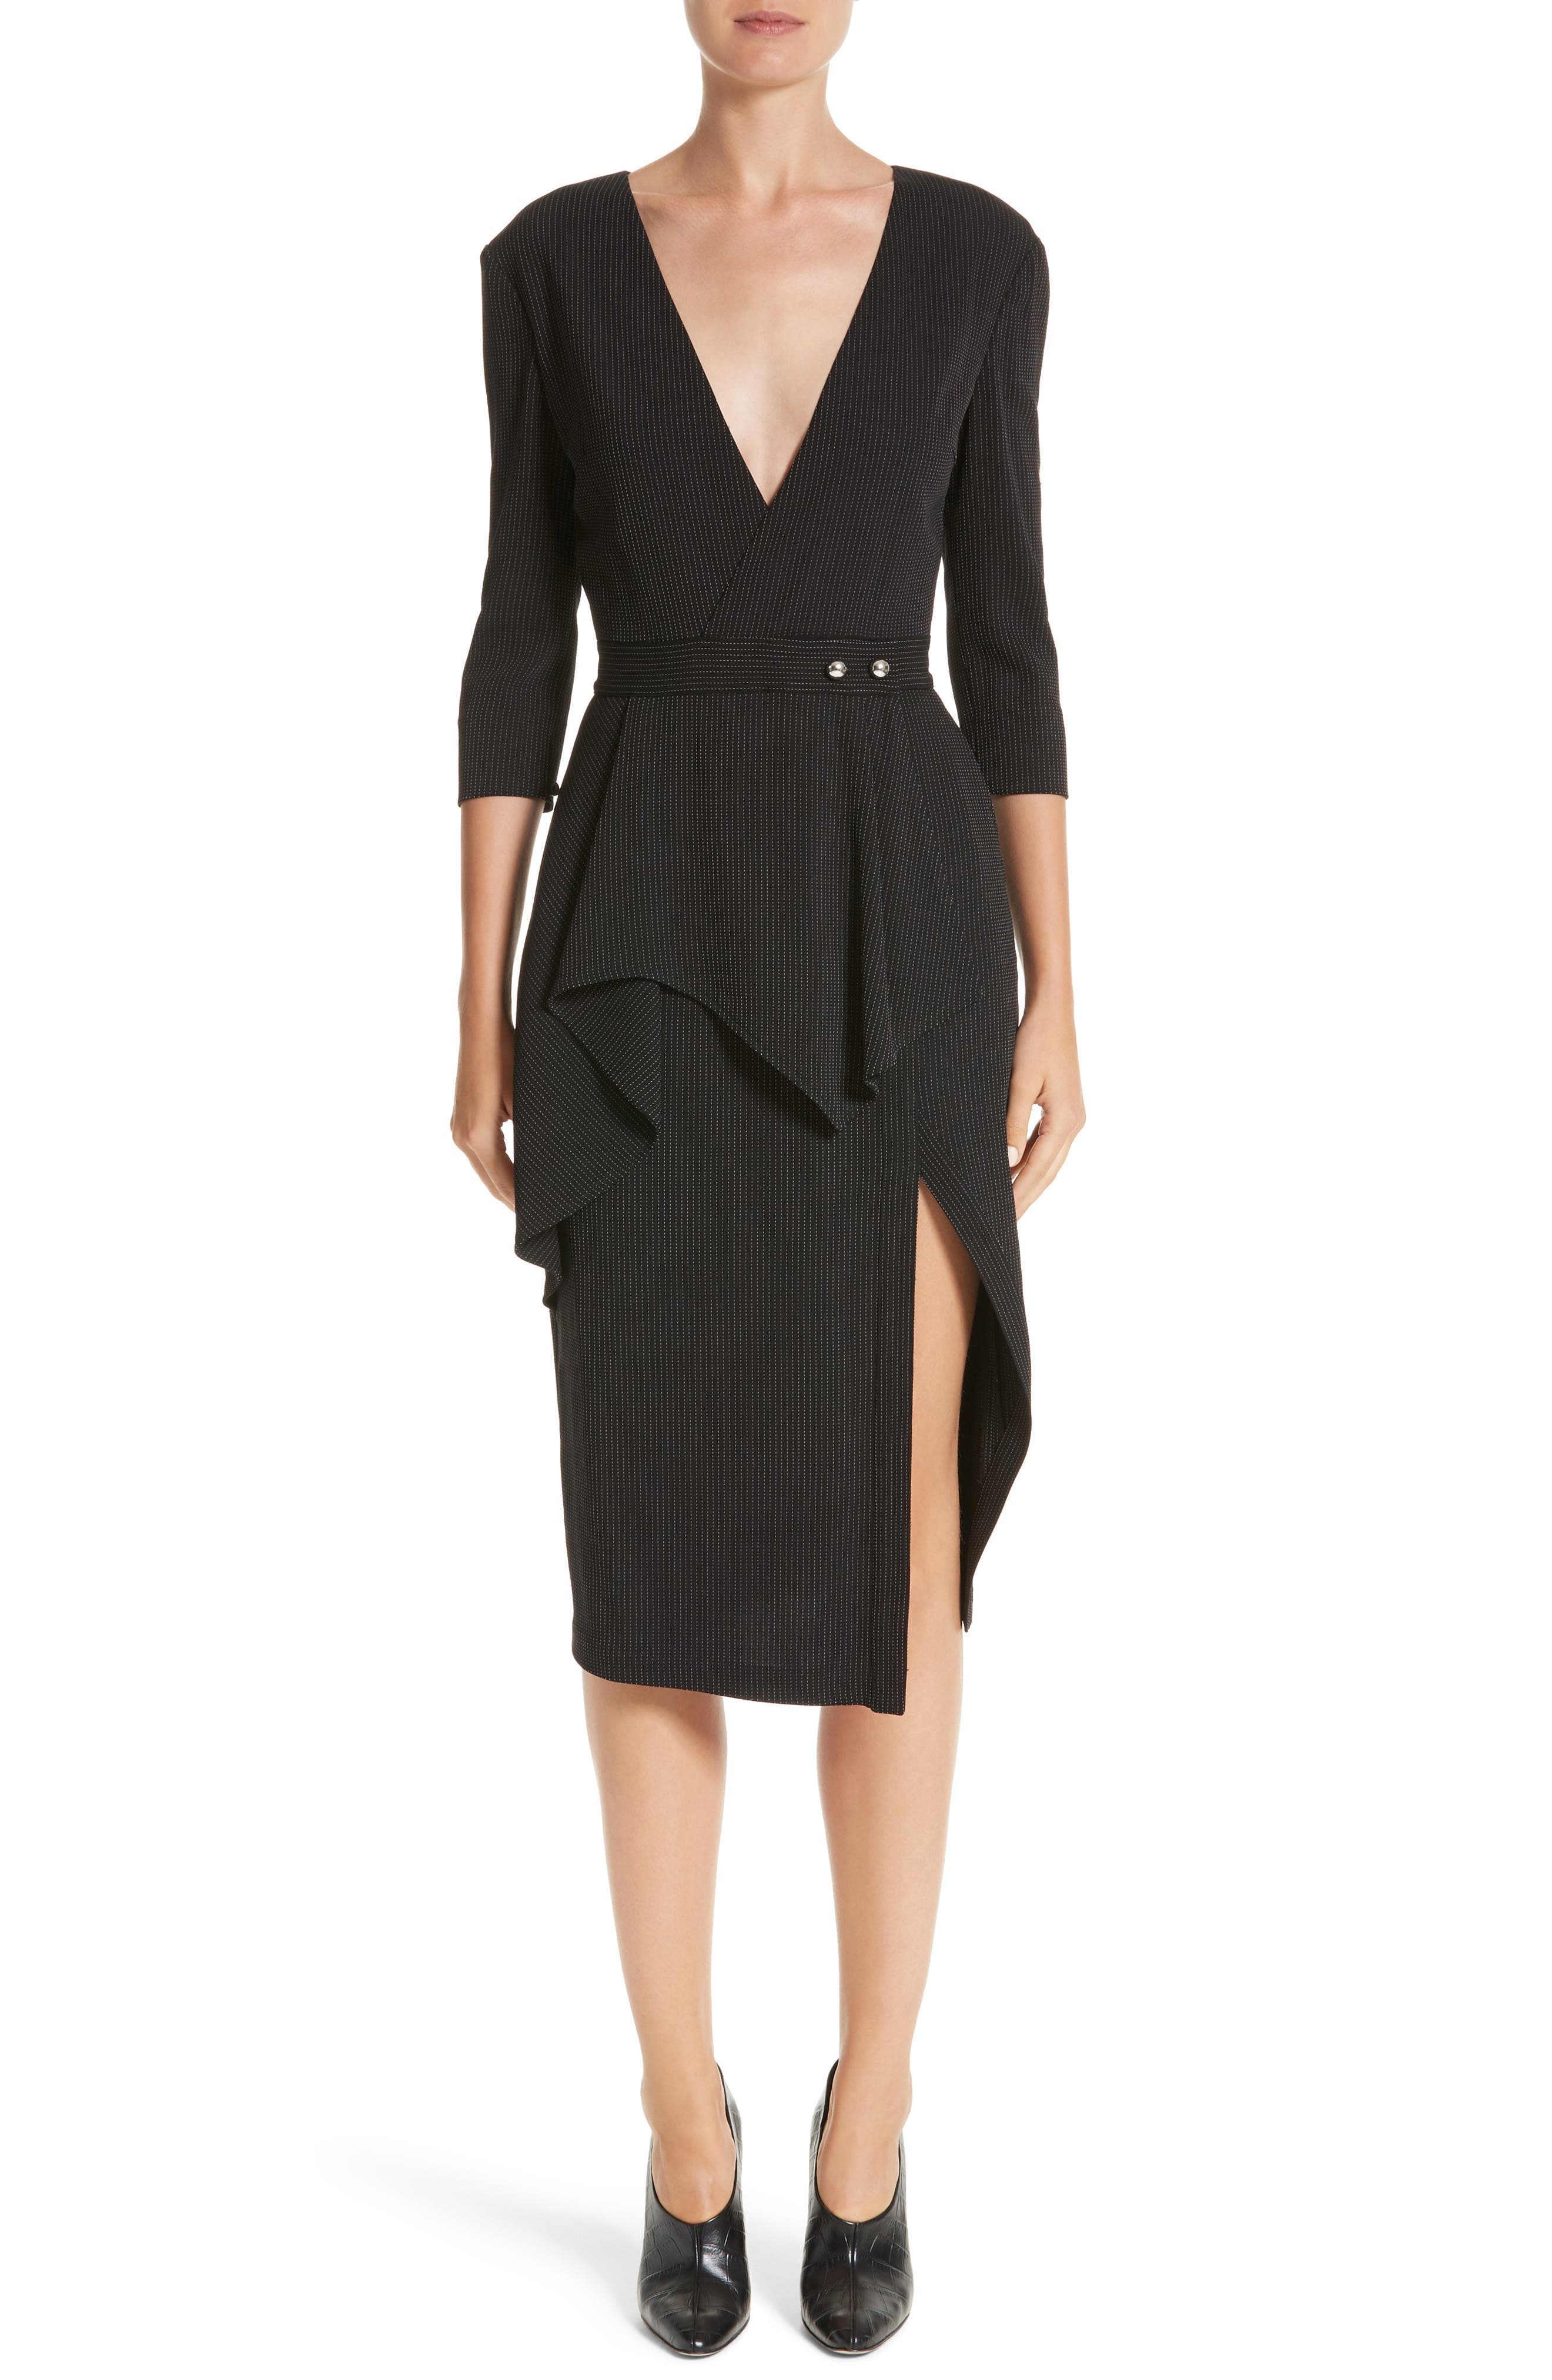 Jason Wu Pinstripe Jersey Sheath Dress,                         Main,                         color, 012